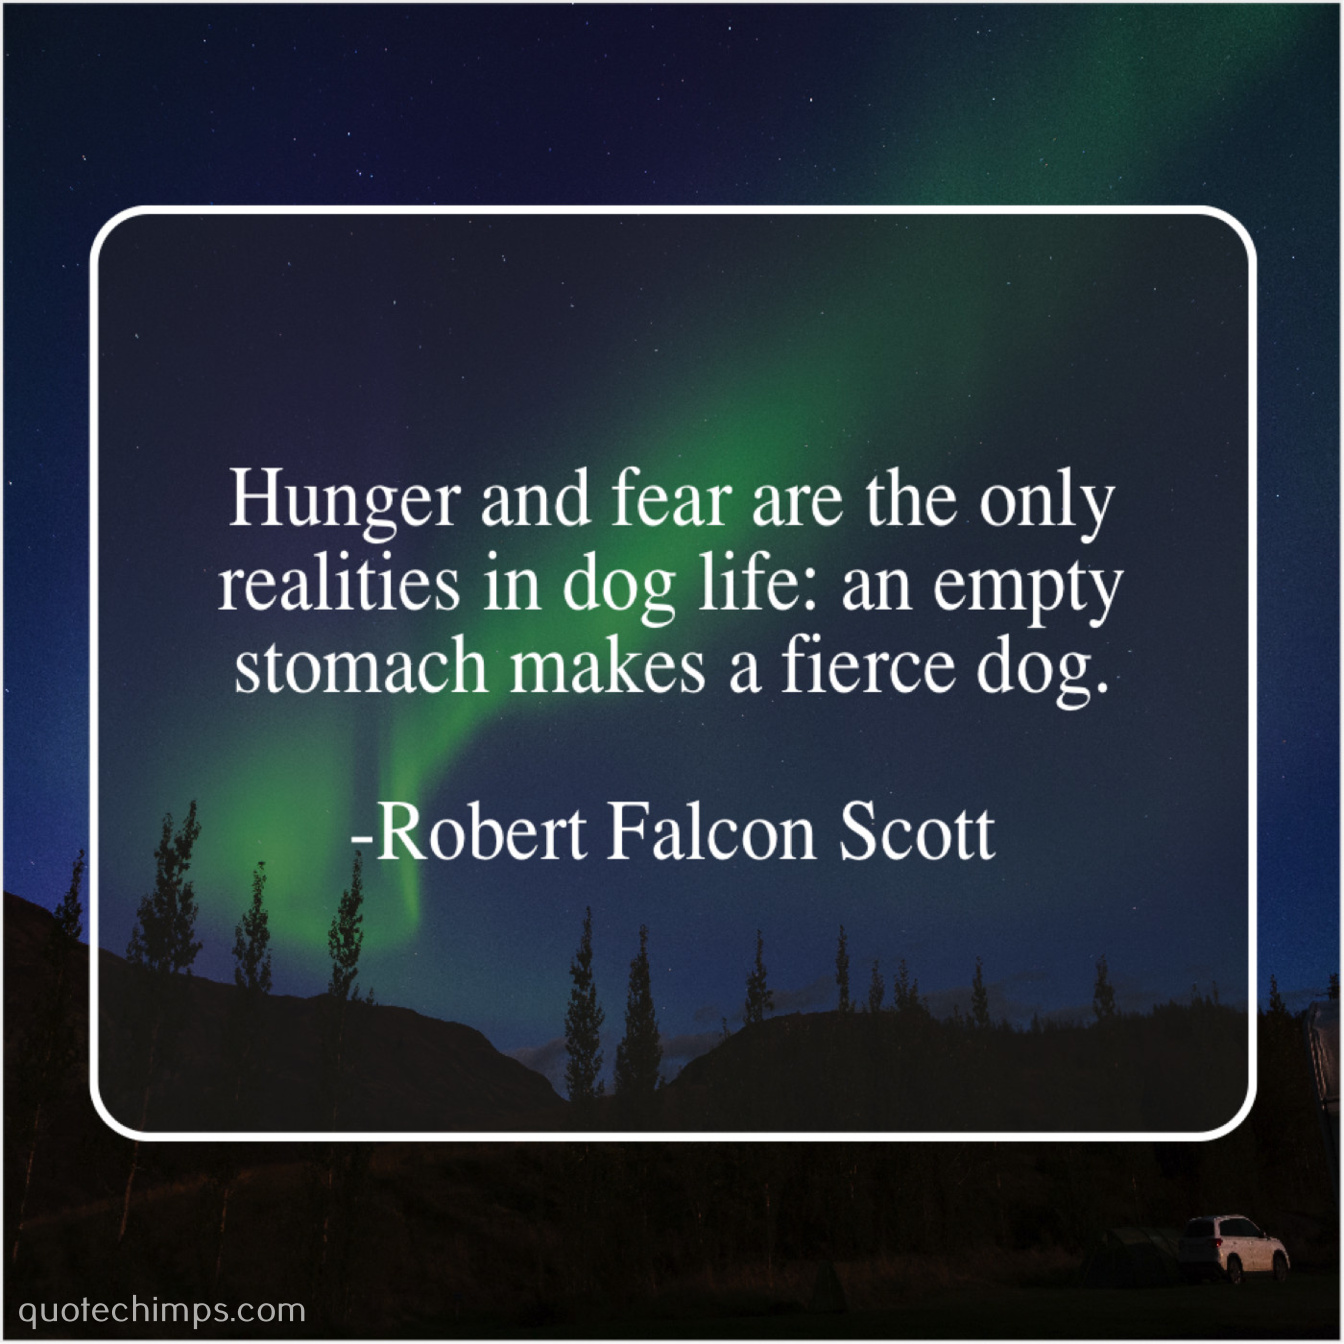 Robert Falcon Scott Hunger And Fear Are The